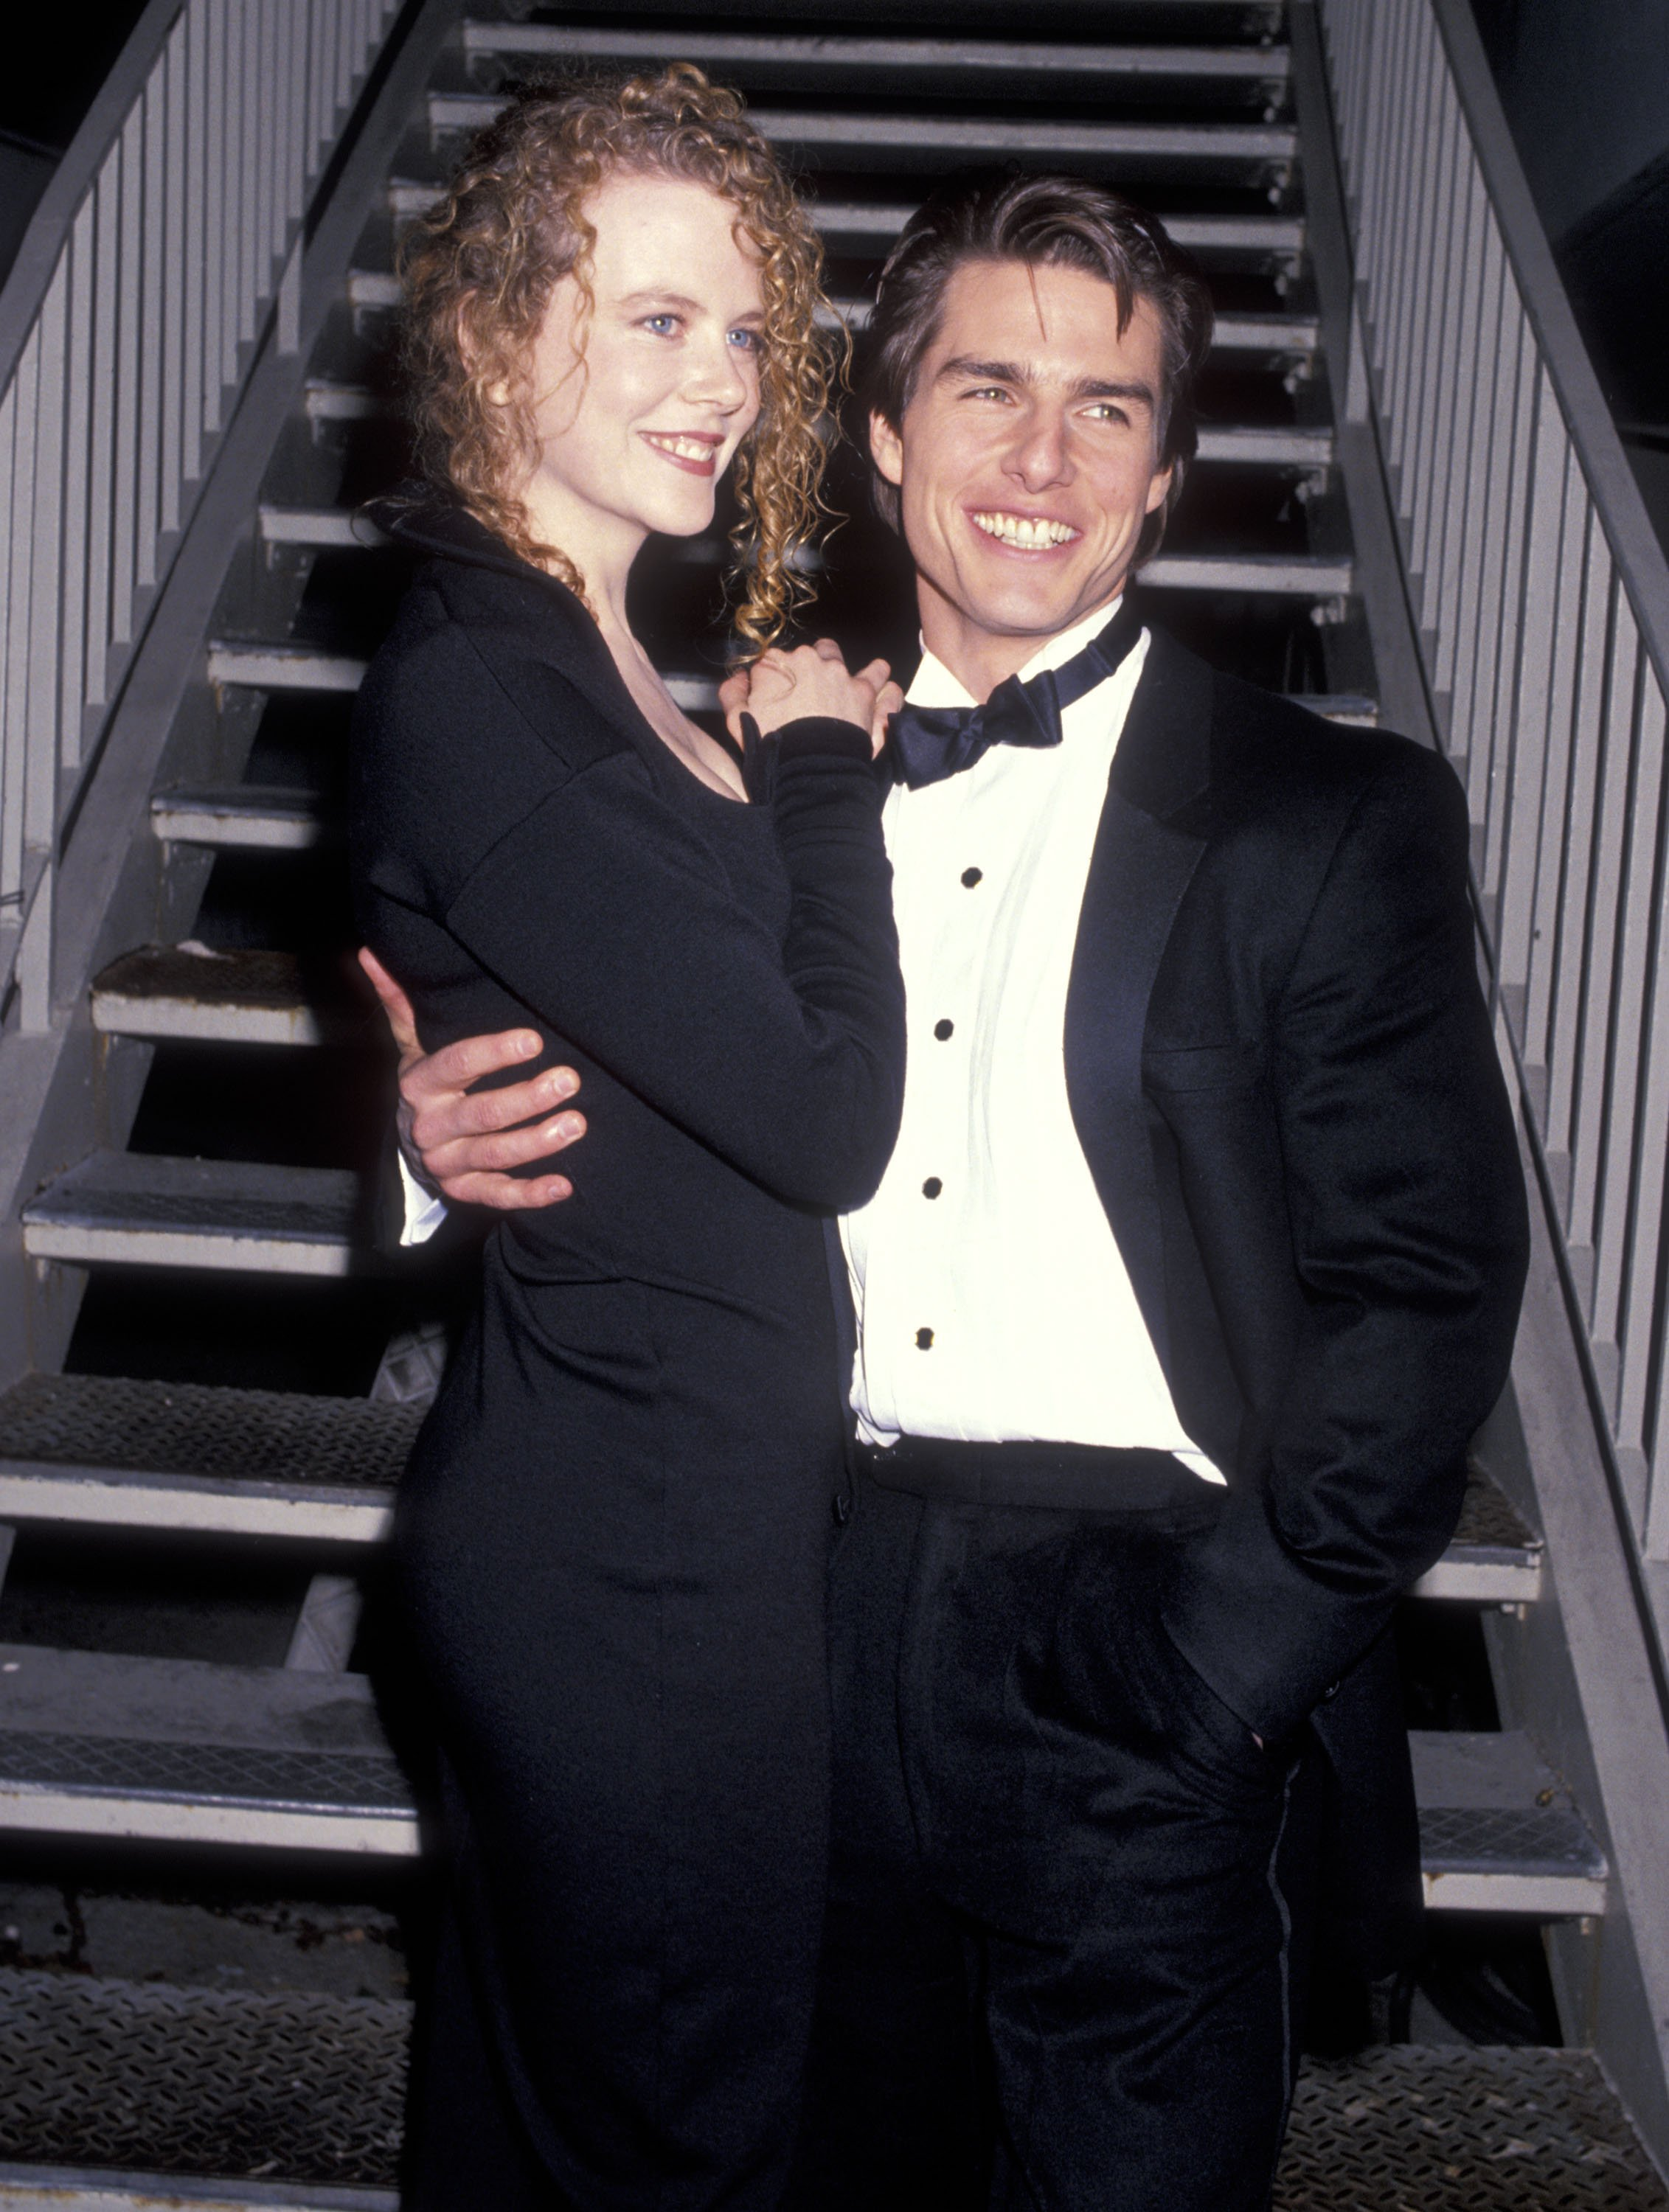 Nicole Kidman and actor Tom Cruise attend the 19th Annual American Film Institute (AFI) Lifetime Achievement Award Salute to Kirk Douglas on March 7, 1991 | Photo: Getty Images